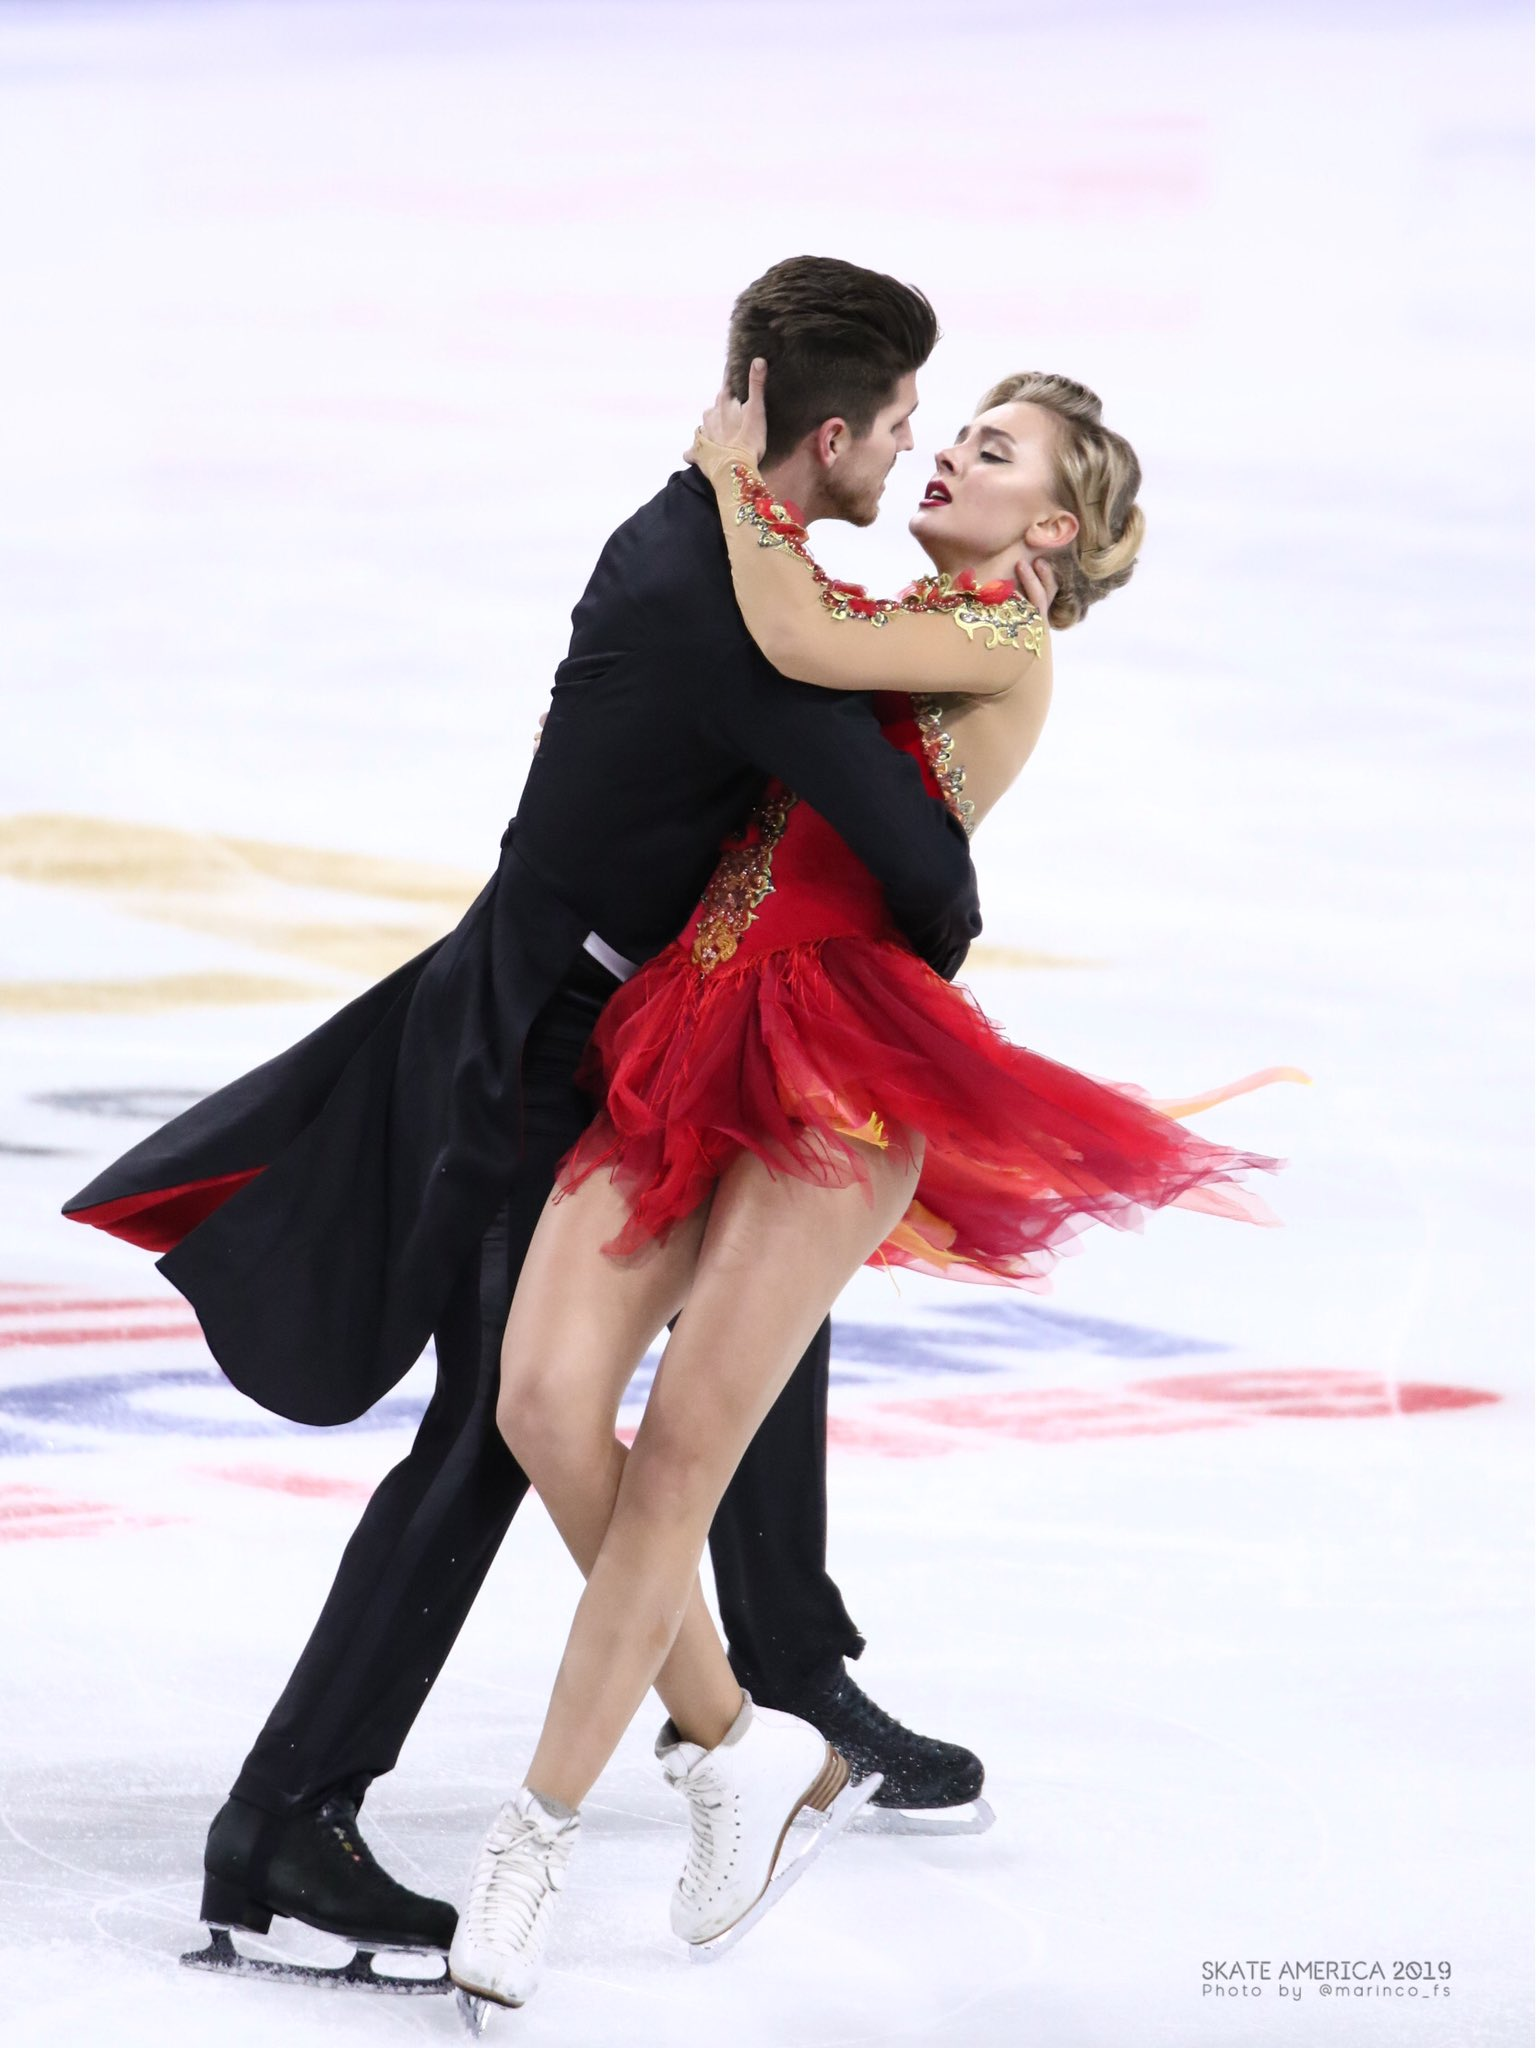 GP - 1 этап. Skate America Las Vegas, NV / USA October 18-20, 2019   - Страница 5 EHJQnZ6UUAEqd3z?format=jpg&name=4096x4096